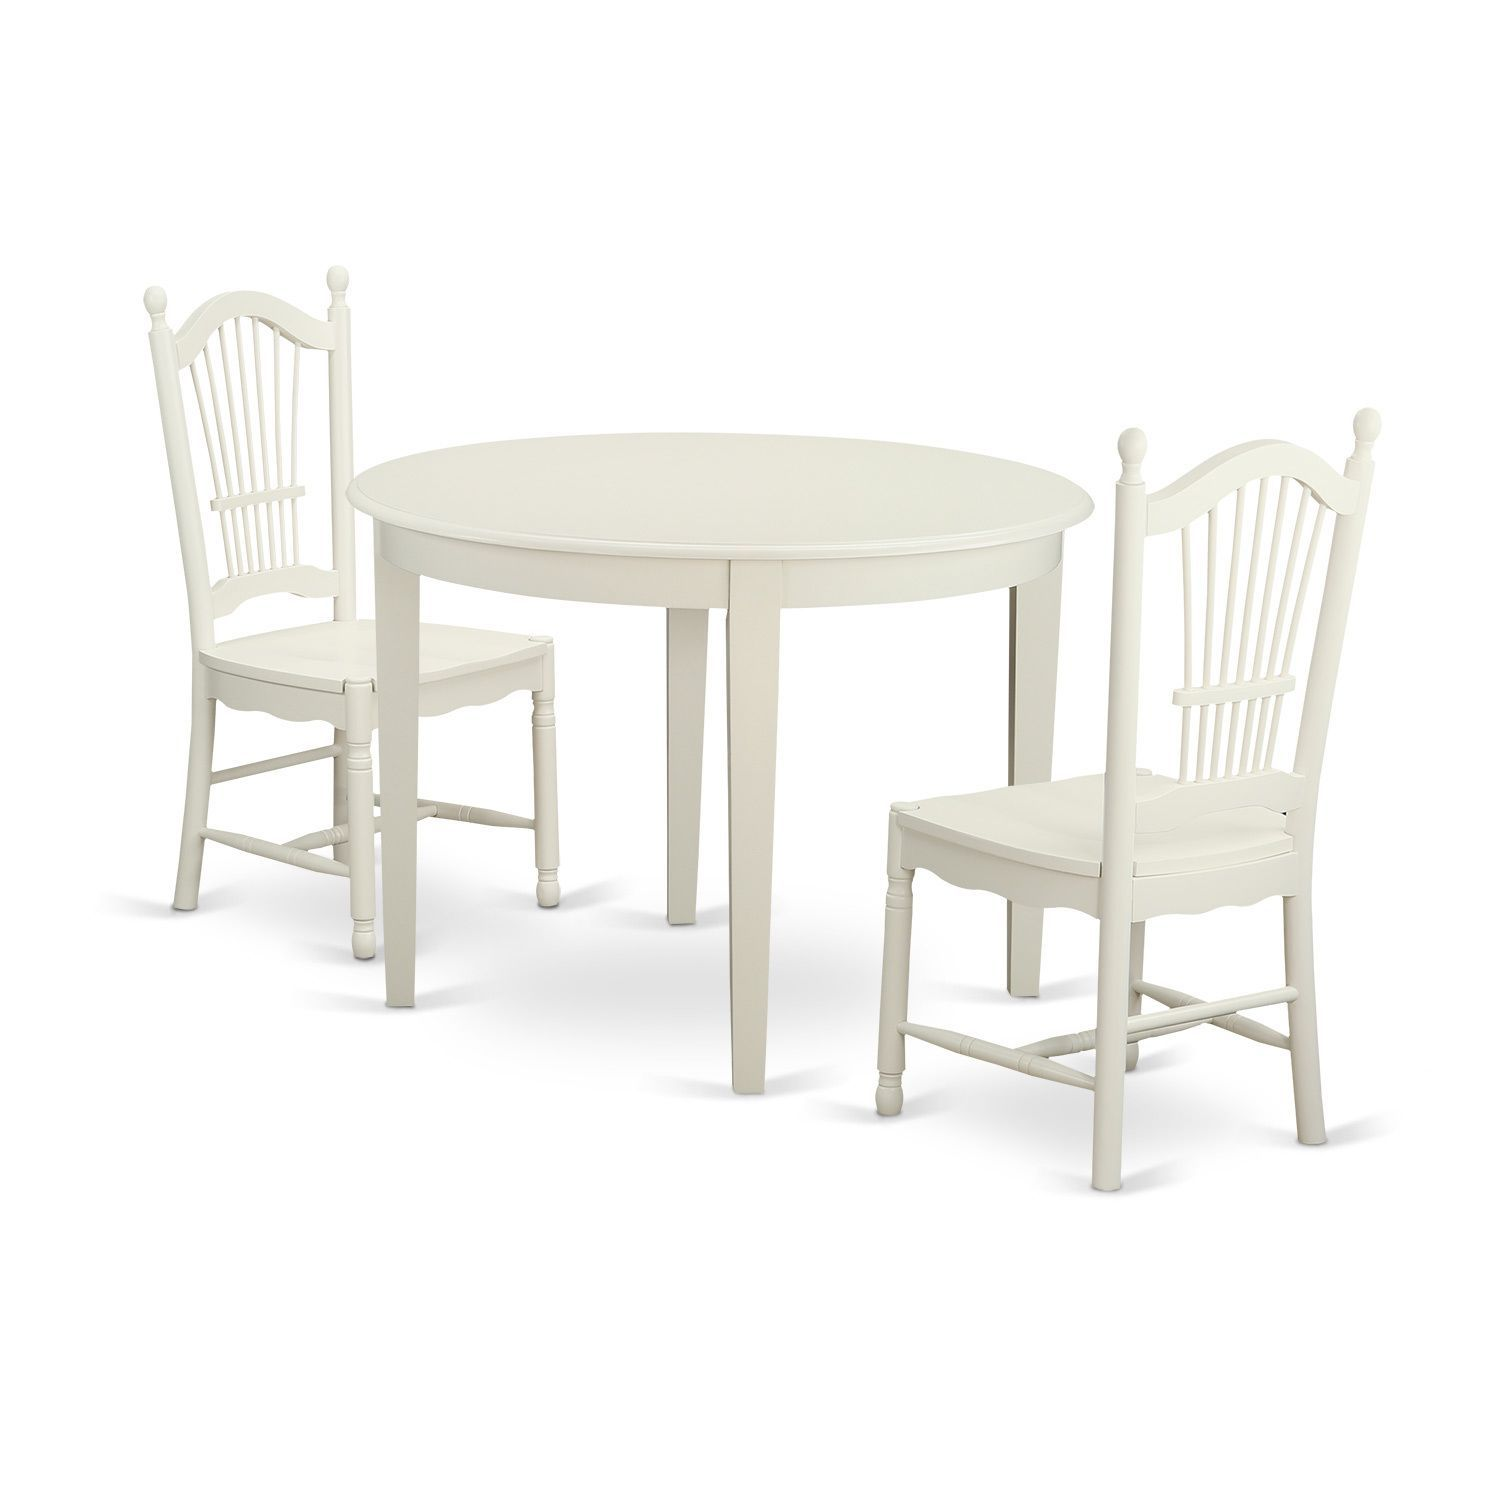 White Kitchen Corner Nook Set Breakfast Table Bench 3 Pc: 3-piece Kitchen Nook Dining Set With Table And 2 Dining